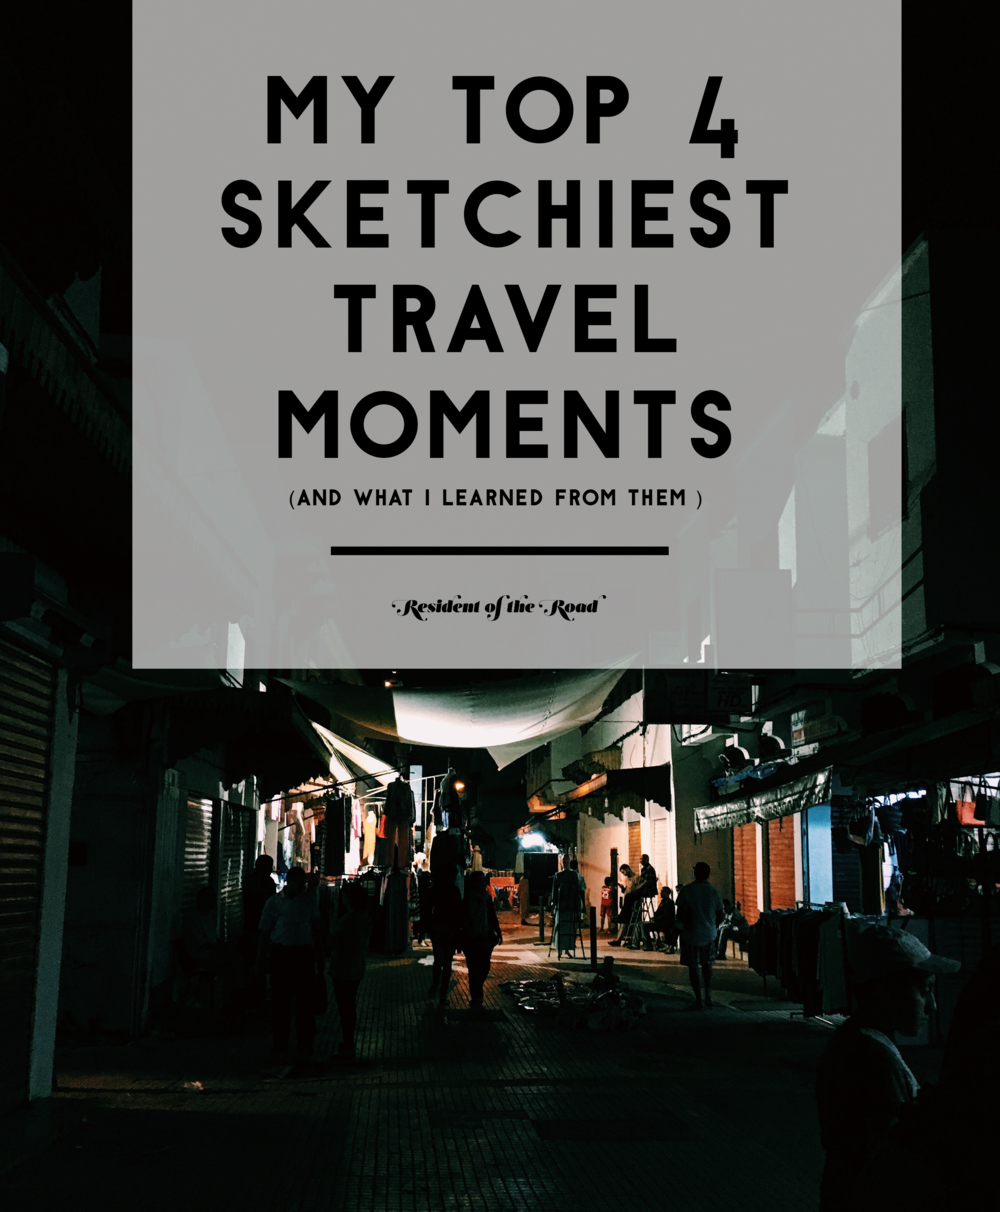 MY SKETCHIEST TRAVEL MOMENTS AND WHAT I LEARNED FROM THEM